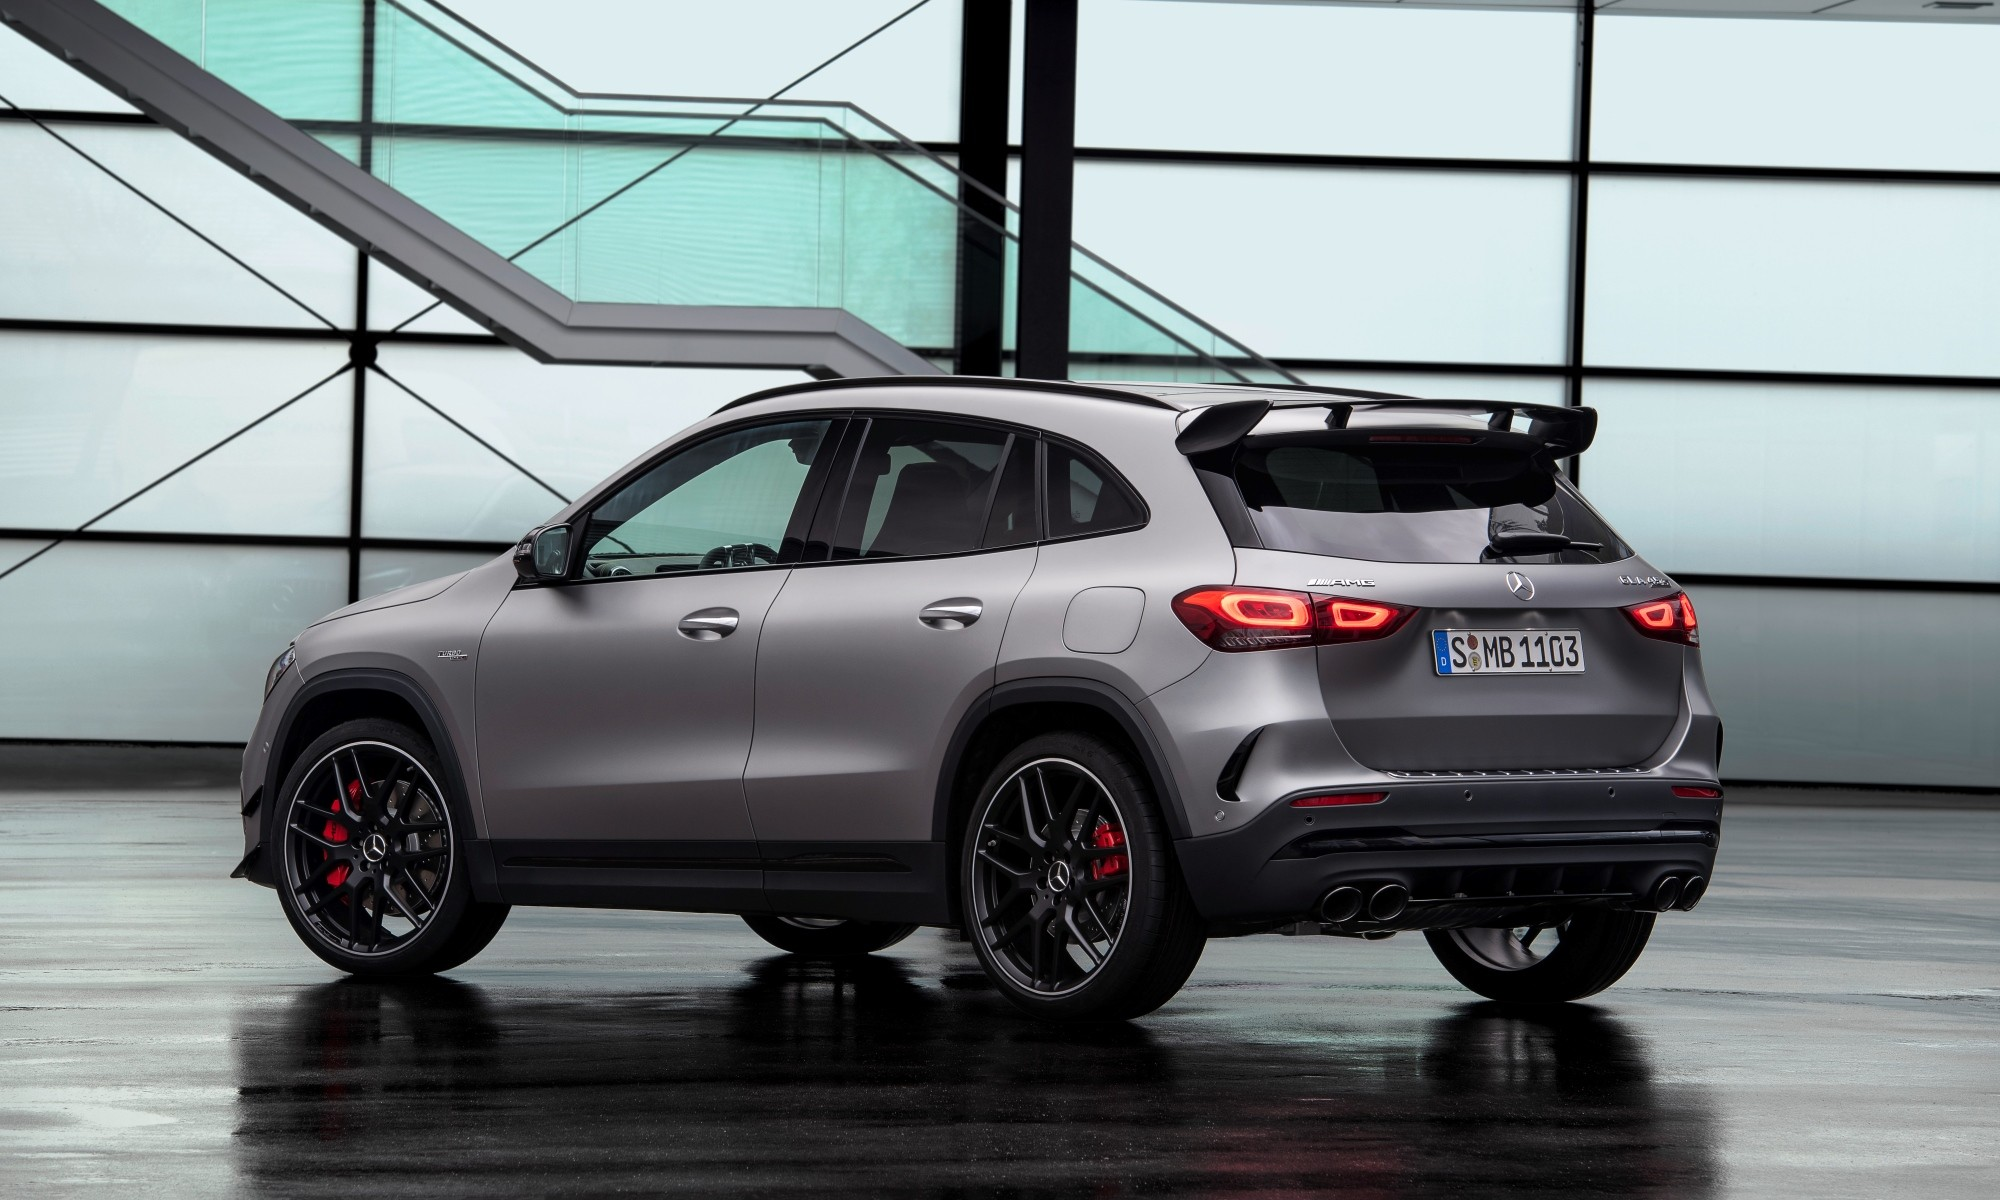 Mercedes-AMG GLA45 rear